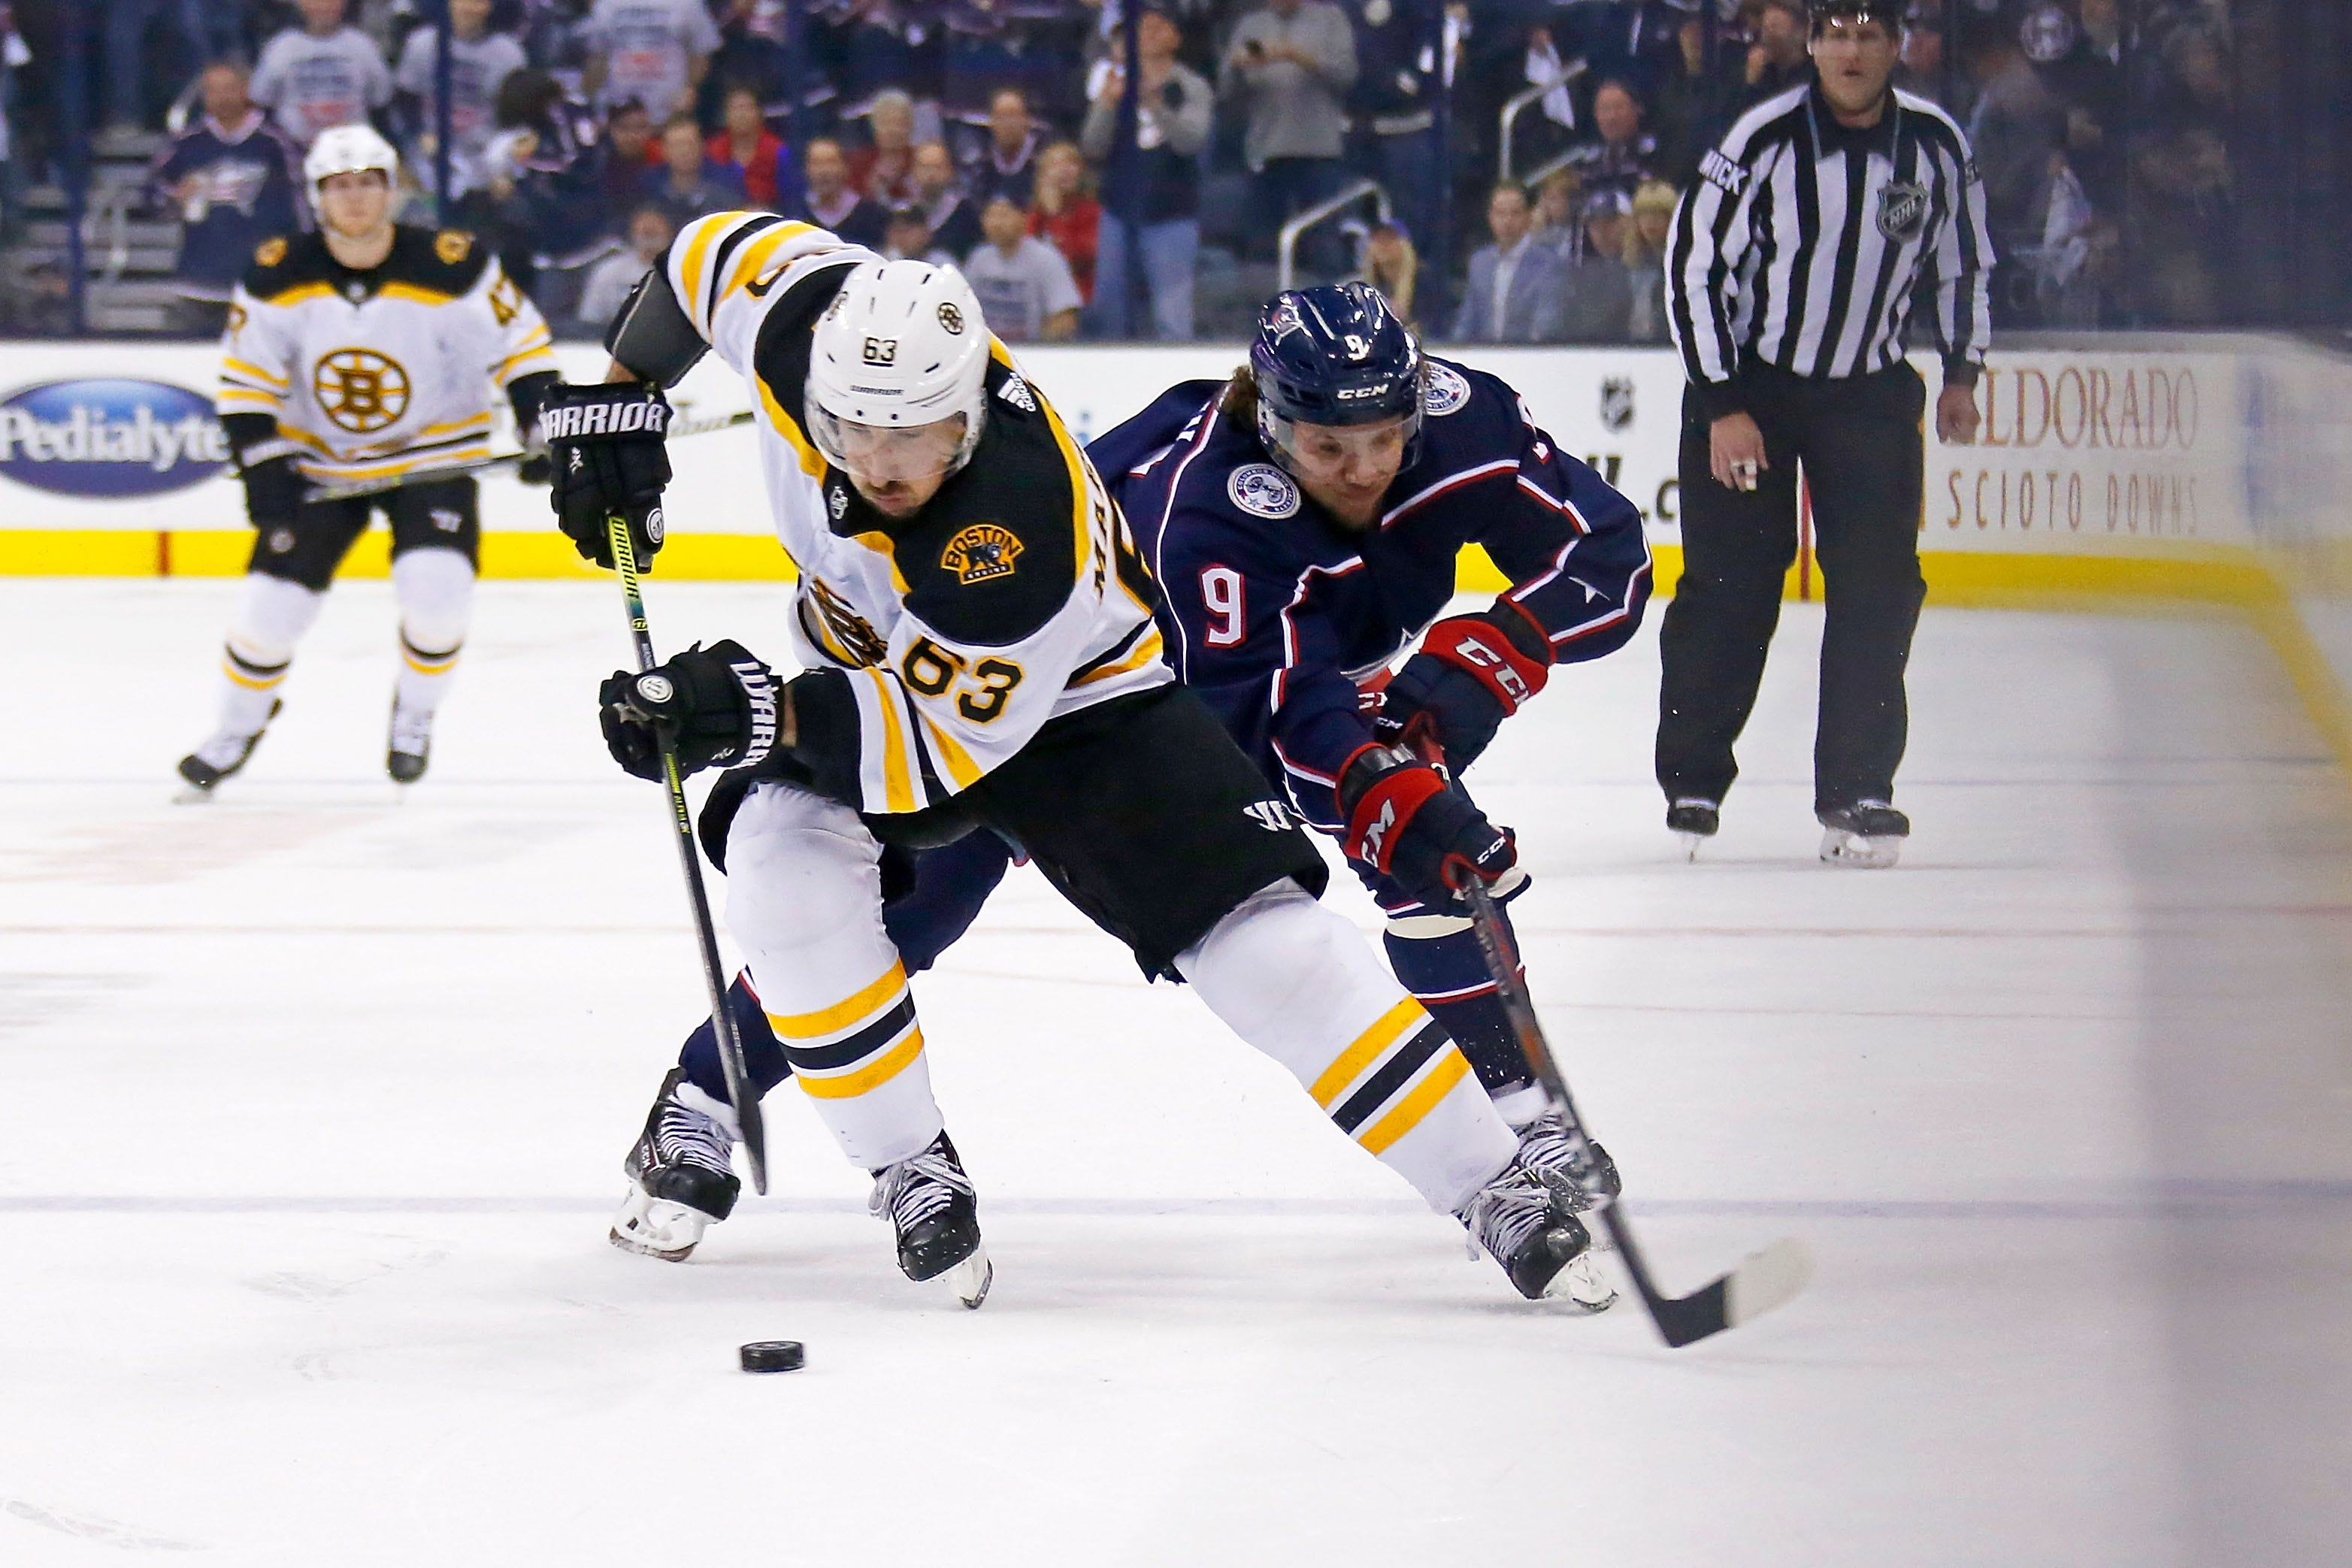 Bruins' Brad Marchand caught on camera delivering cheap shot during loss to Blue Jackets